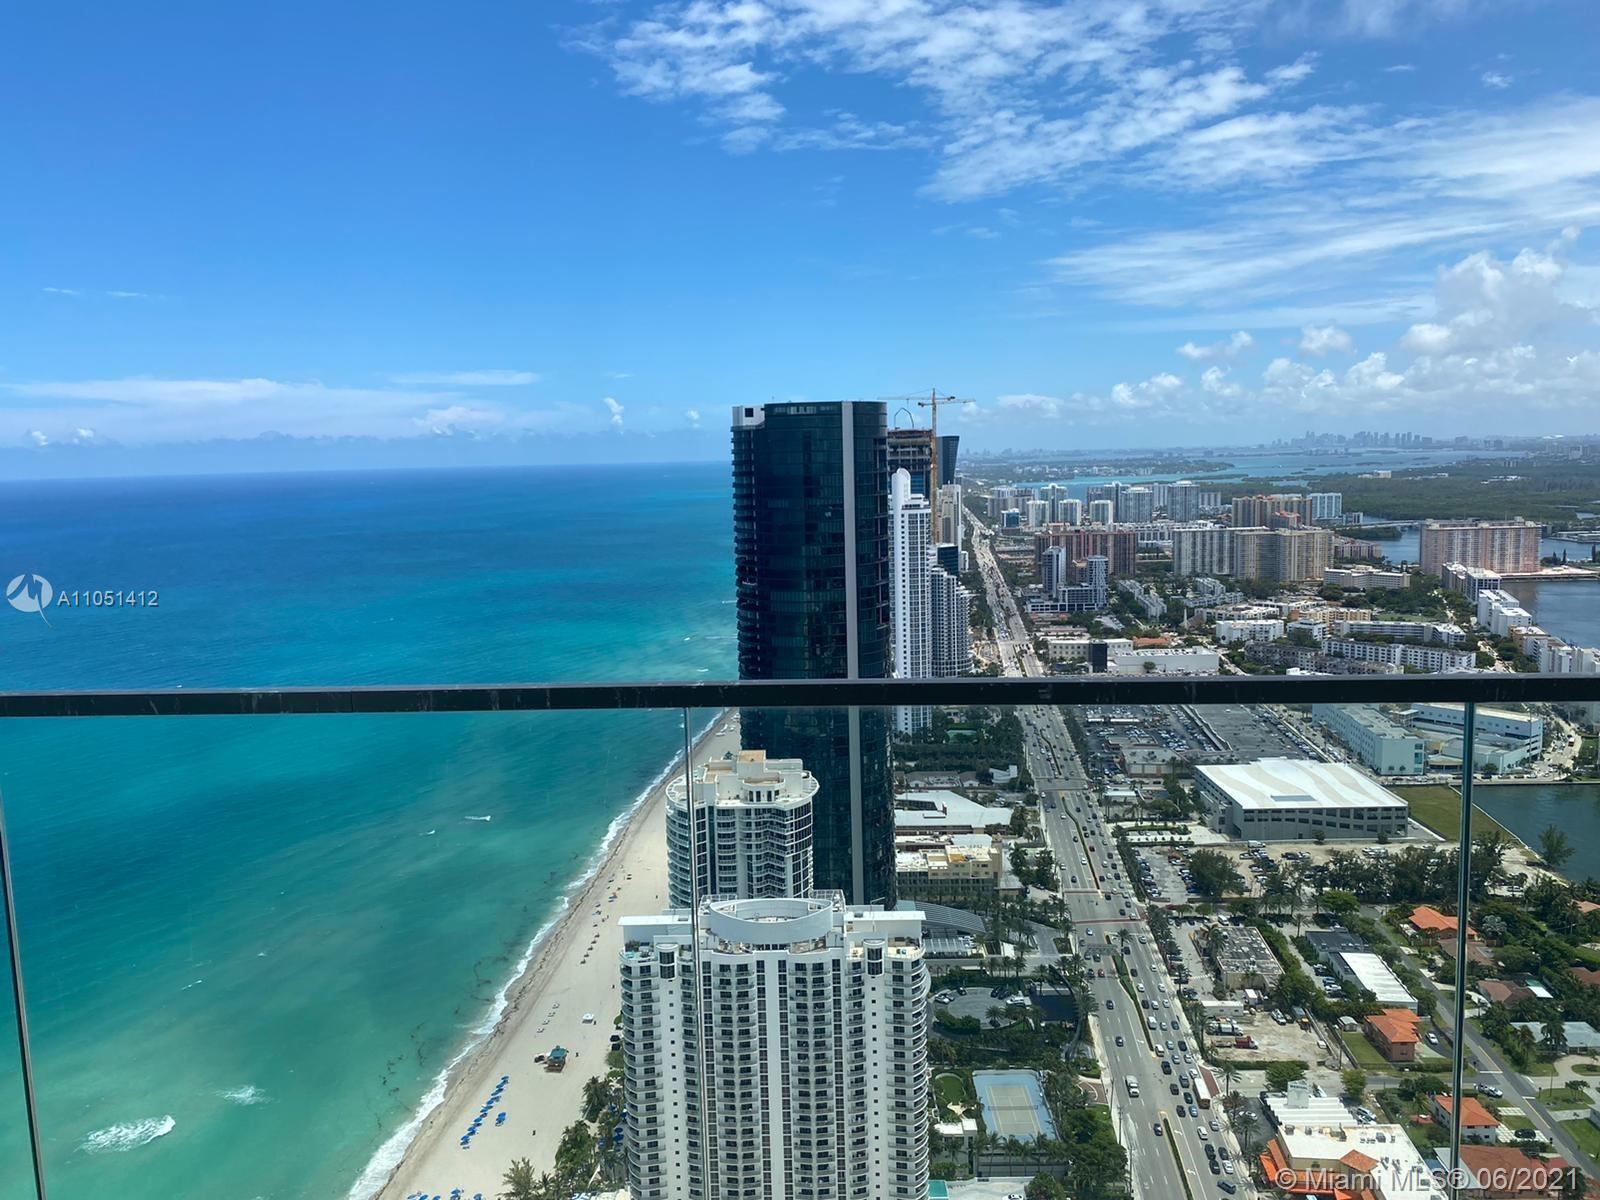 COMPLETELY BRAND NEW 2 BED + 2 BATH LUXURY CORNER UNIT WITH WEST FACING AMAZING VIEWS OF INTRACOASTA